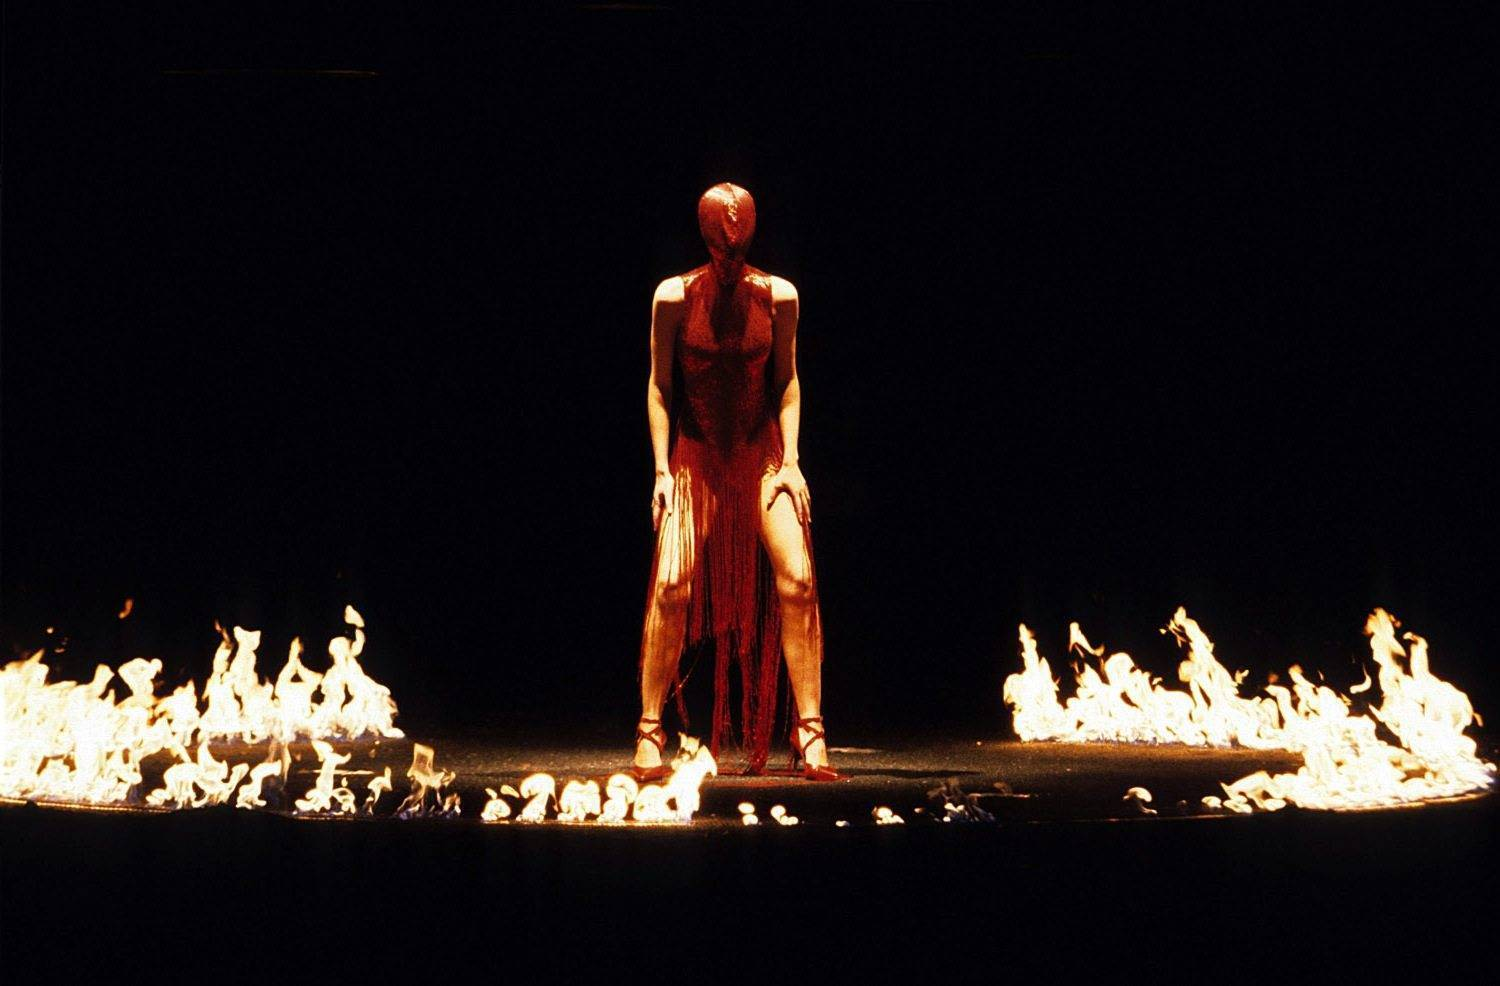 Alexander McQueen - fashion hooligan, savage beauty